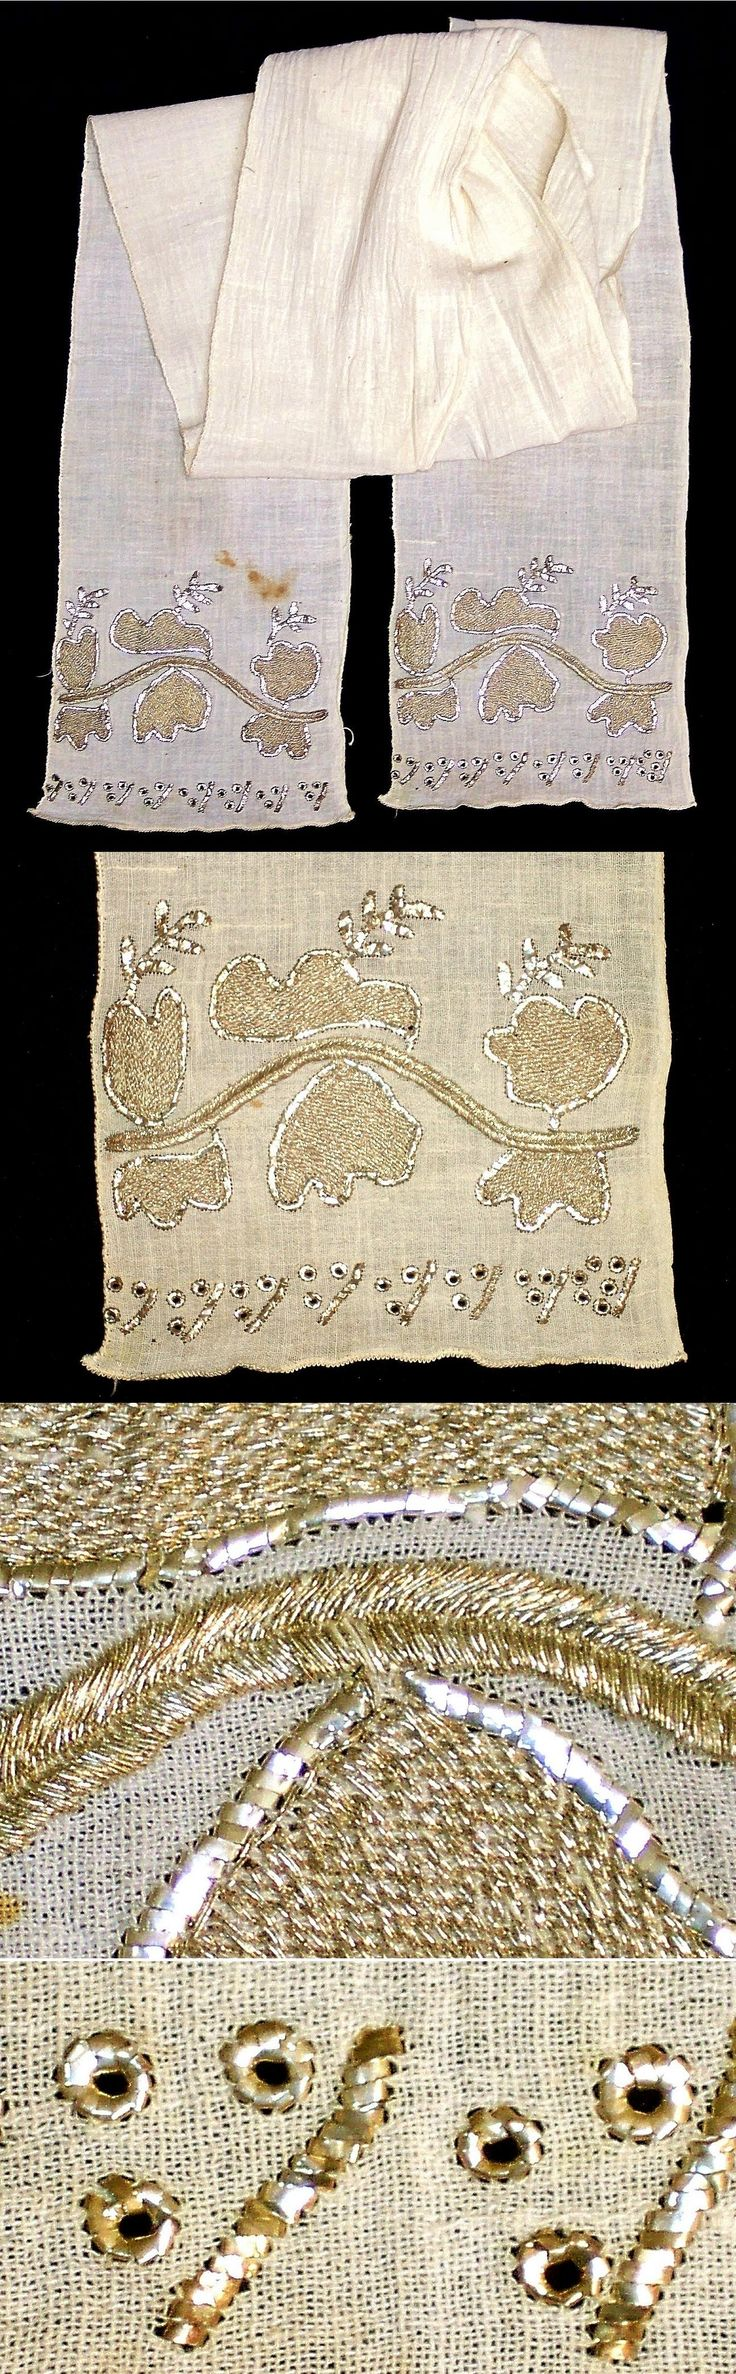 An 'uçkur' (sash / waist band), generally worn by women.  From the Bursa region, ca. 1925.  Adorned with gold work embroidery (in gold) and 'tel kırma' (in silver; motives are obtained by sticking narrow metallic strips through the fabric and folding them).  Both techniques are 'two-sided' (identical on both sides).  (Inv.nr. brdw004 - Kavak Collection of Anatolian Textiles -Antwerpen/Belgium).